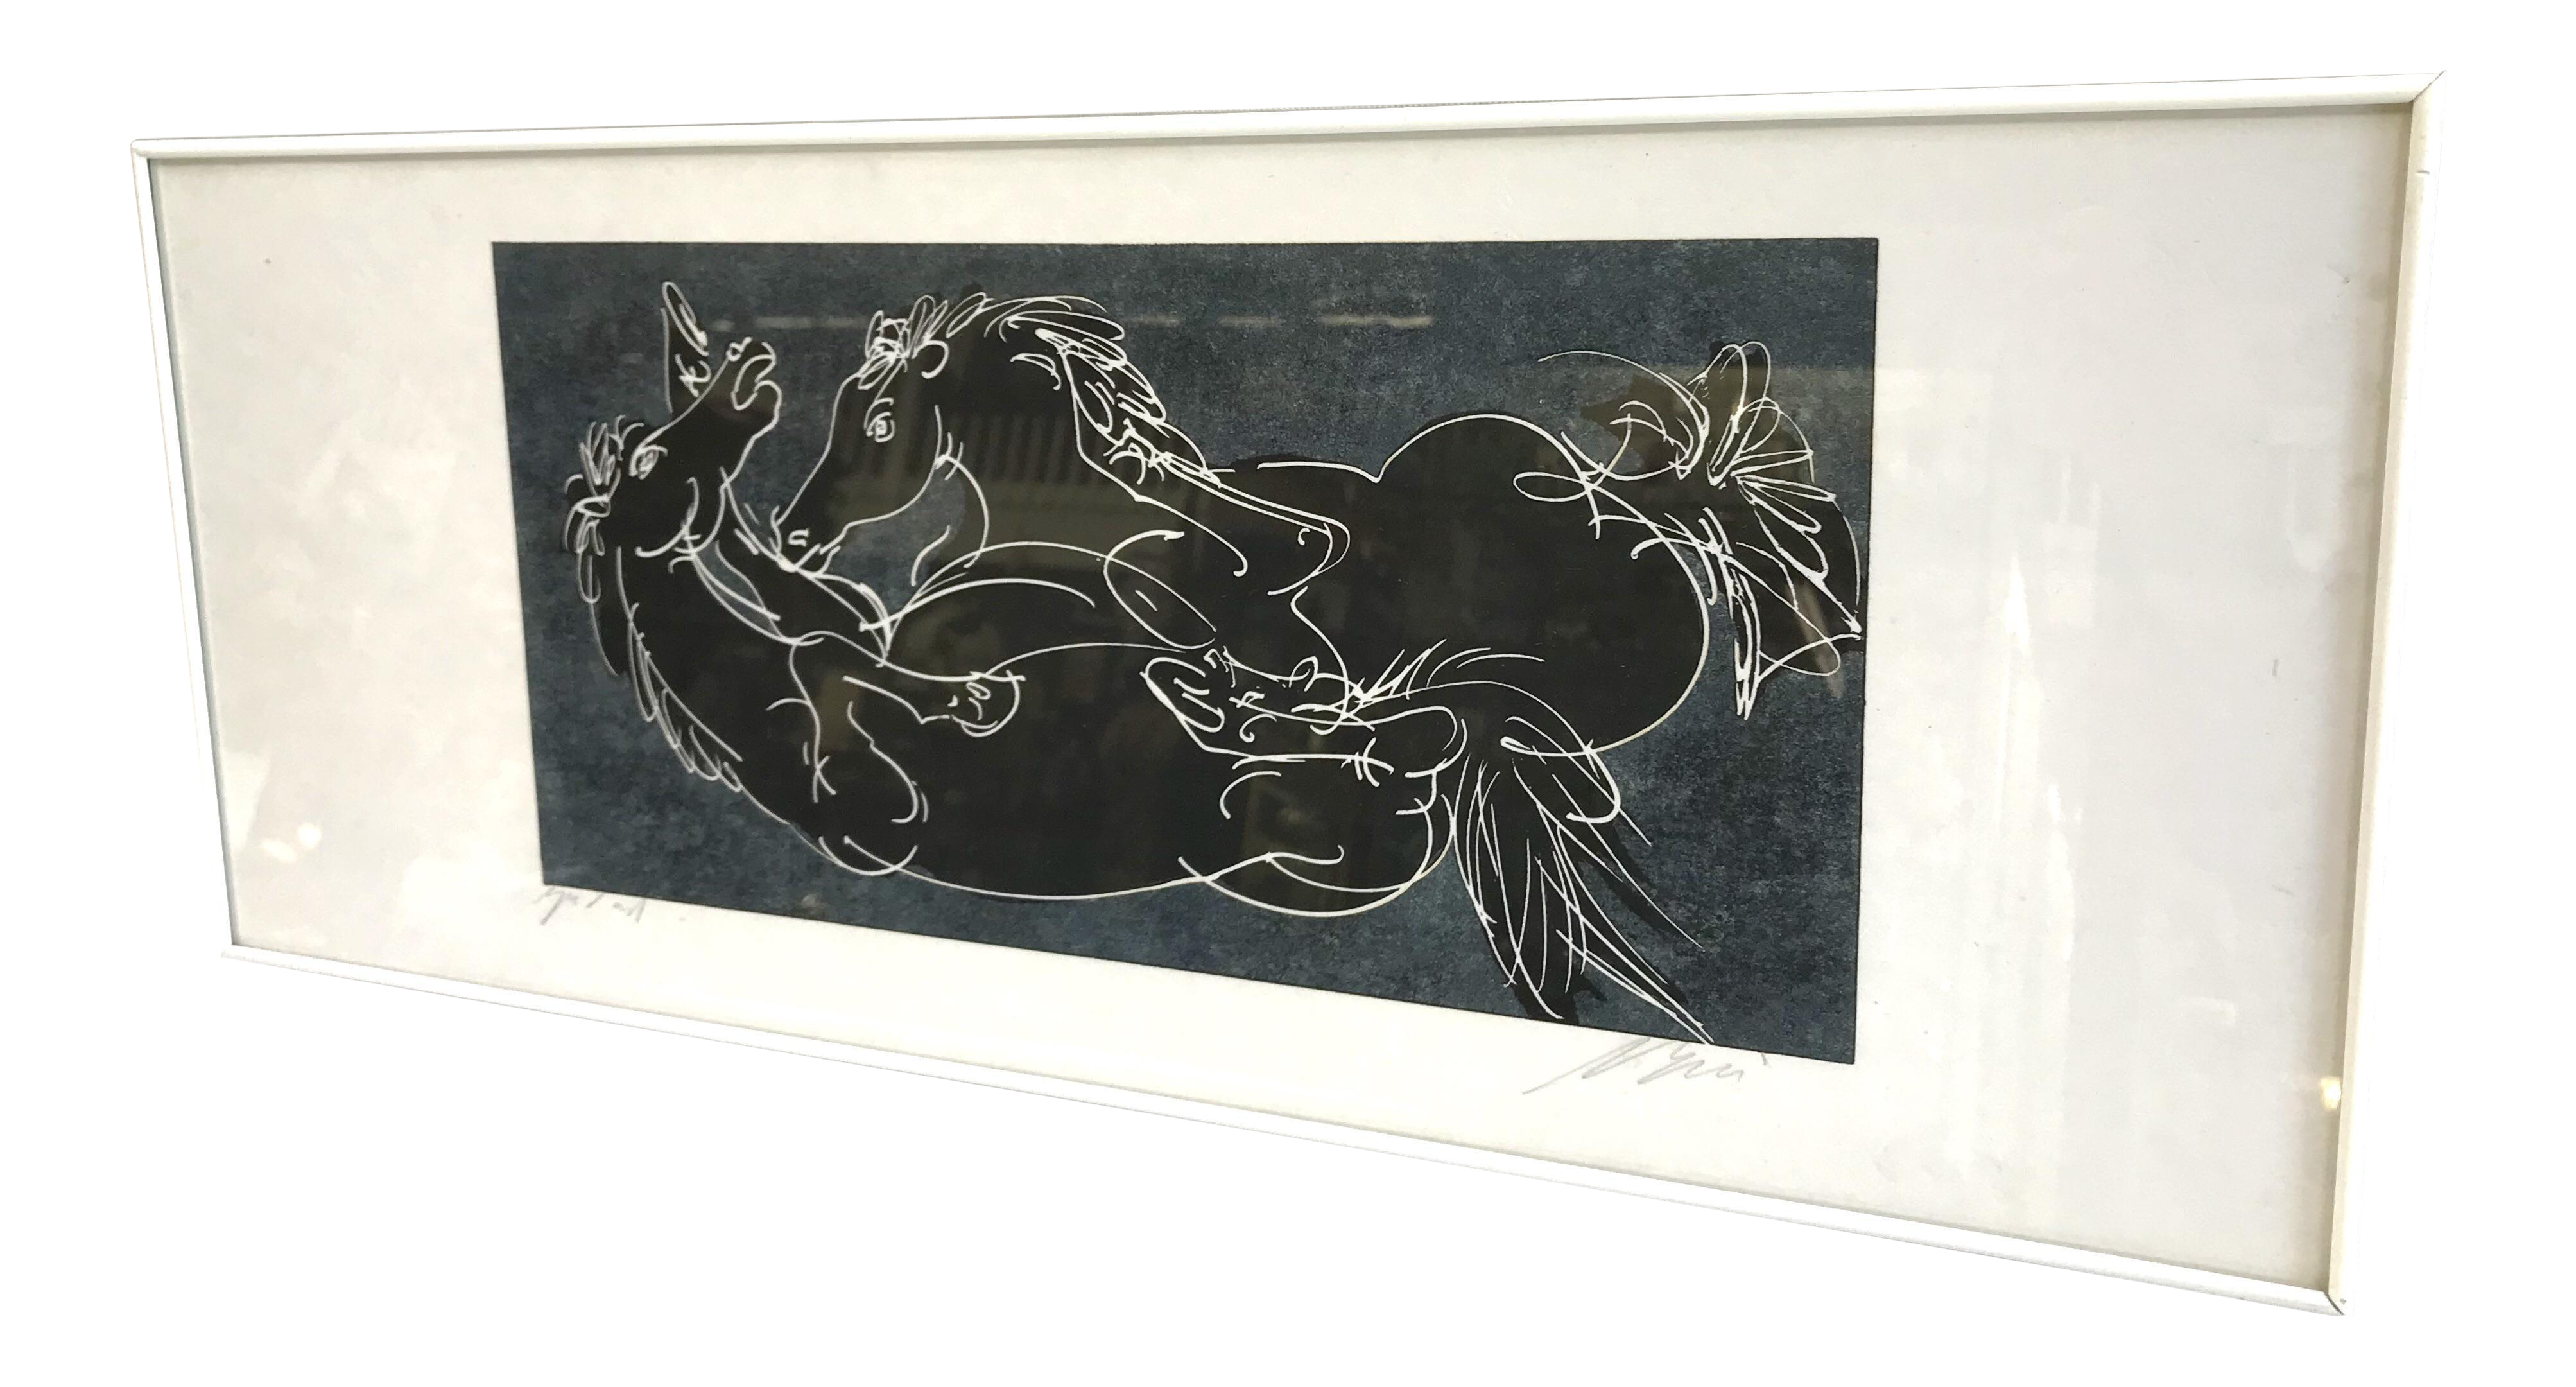 Relief drawing printmaking. Abstract framed print of